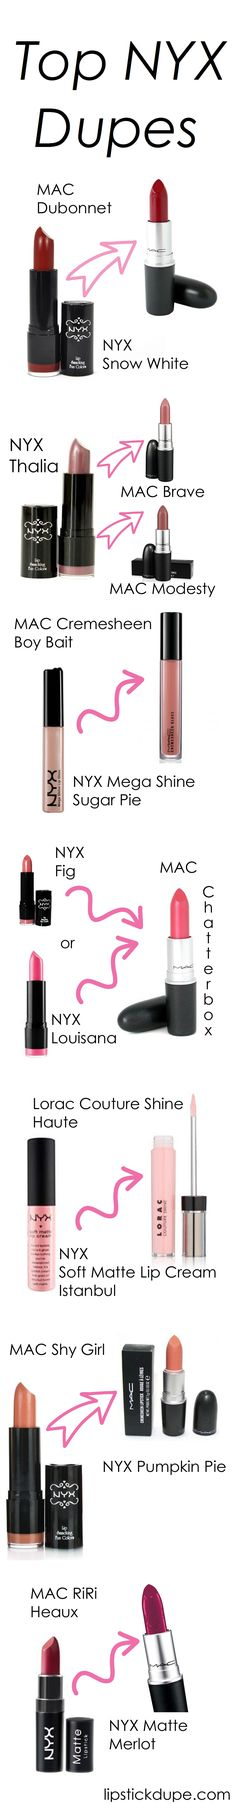 NYX Lip Dupes! MAC and Lorac dupes. #dupe #dupes #macdupes www.lipstickdupe.com